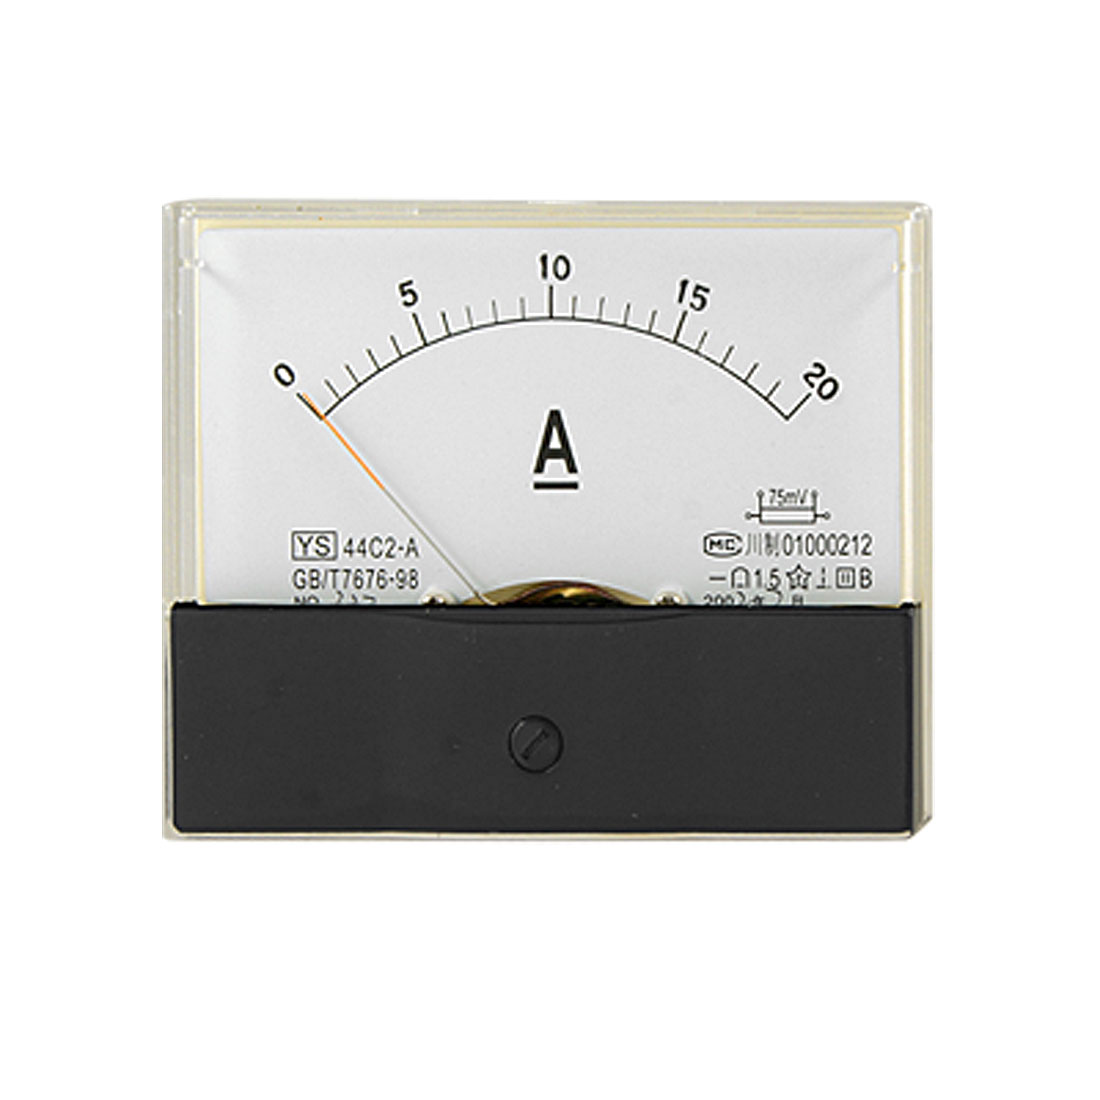 0-20A DC Current Ampere Meter Rectangle Panel Amperemeter Gauge 44C2